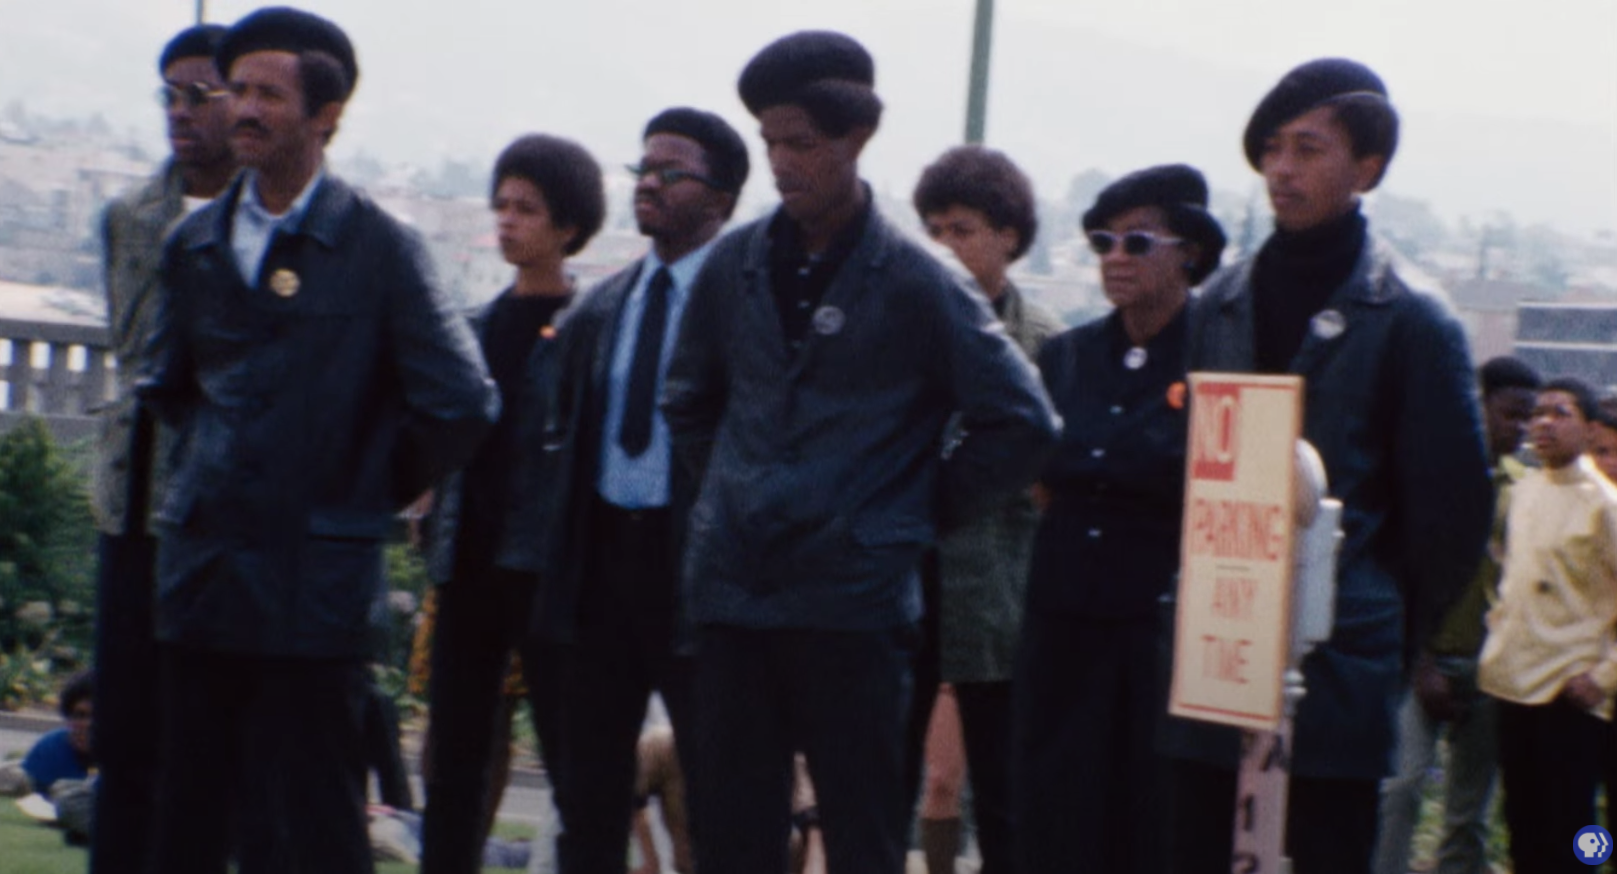 Archival footage of the Black Panther Party wearing leather jackets, berets, sunglasses, and powder blue shirts